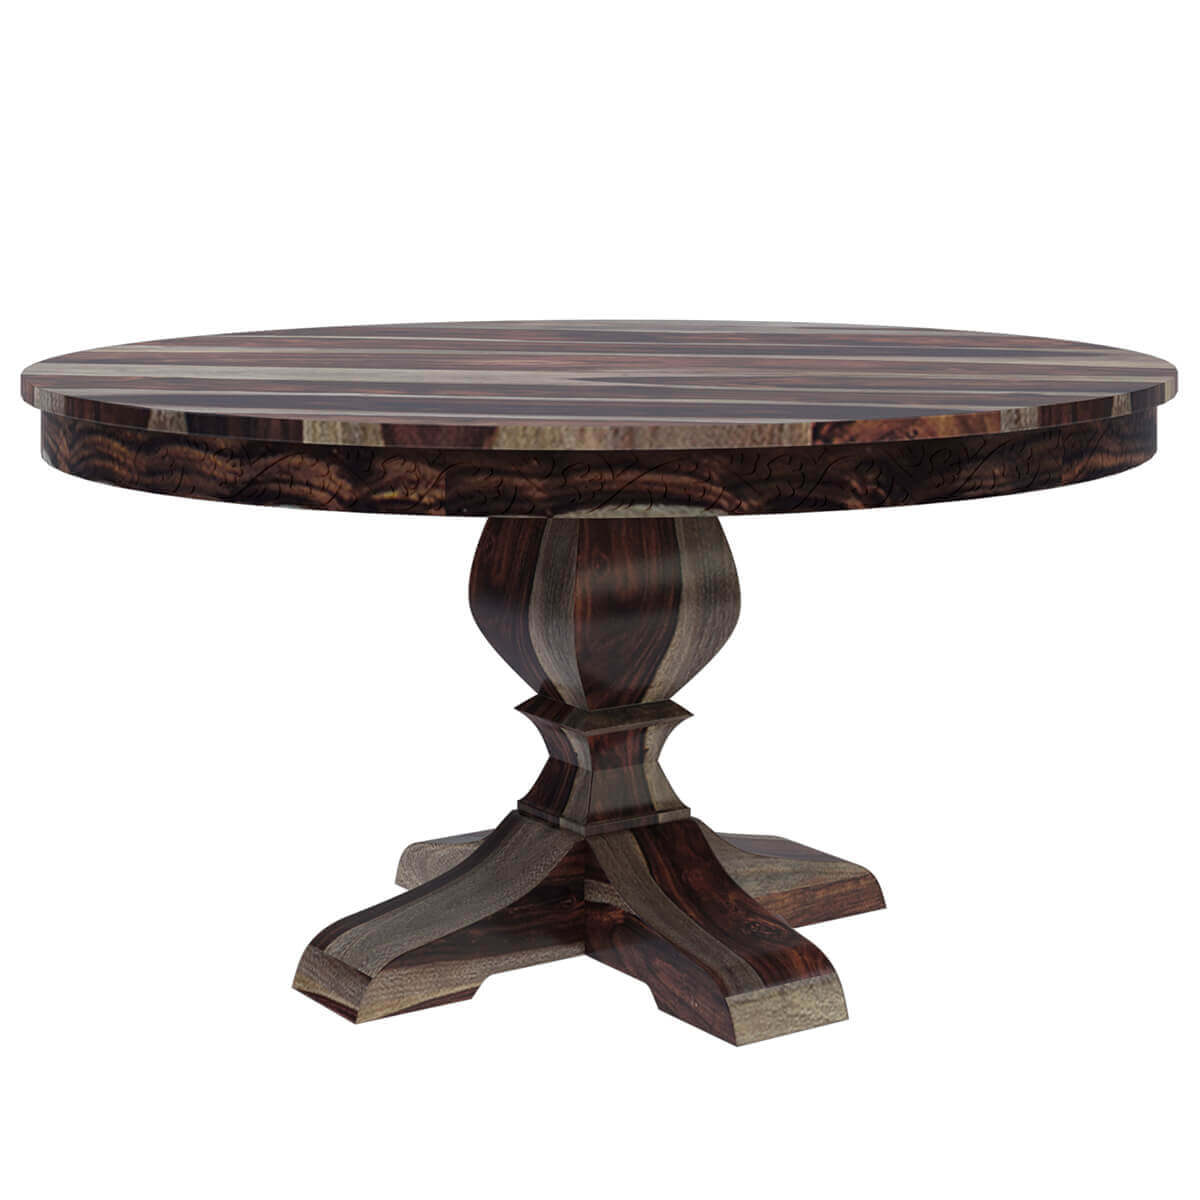 Hosford handcrafted solid wood 60 round pedestal dining table for Pedestal dining table